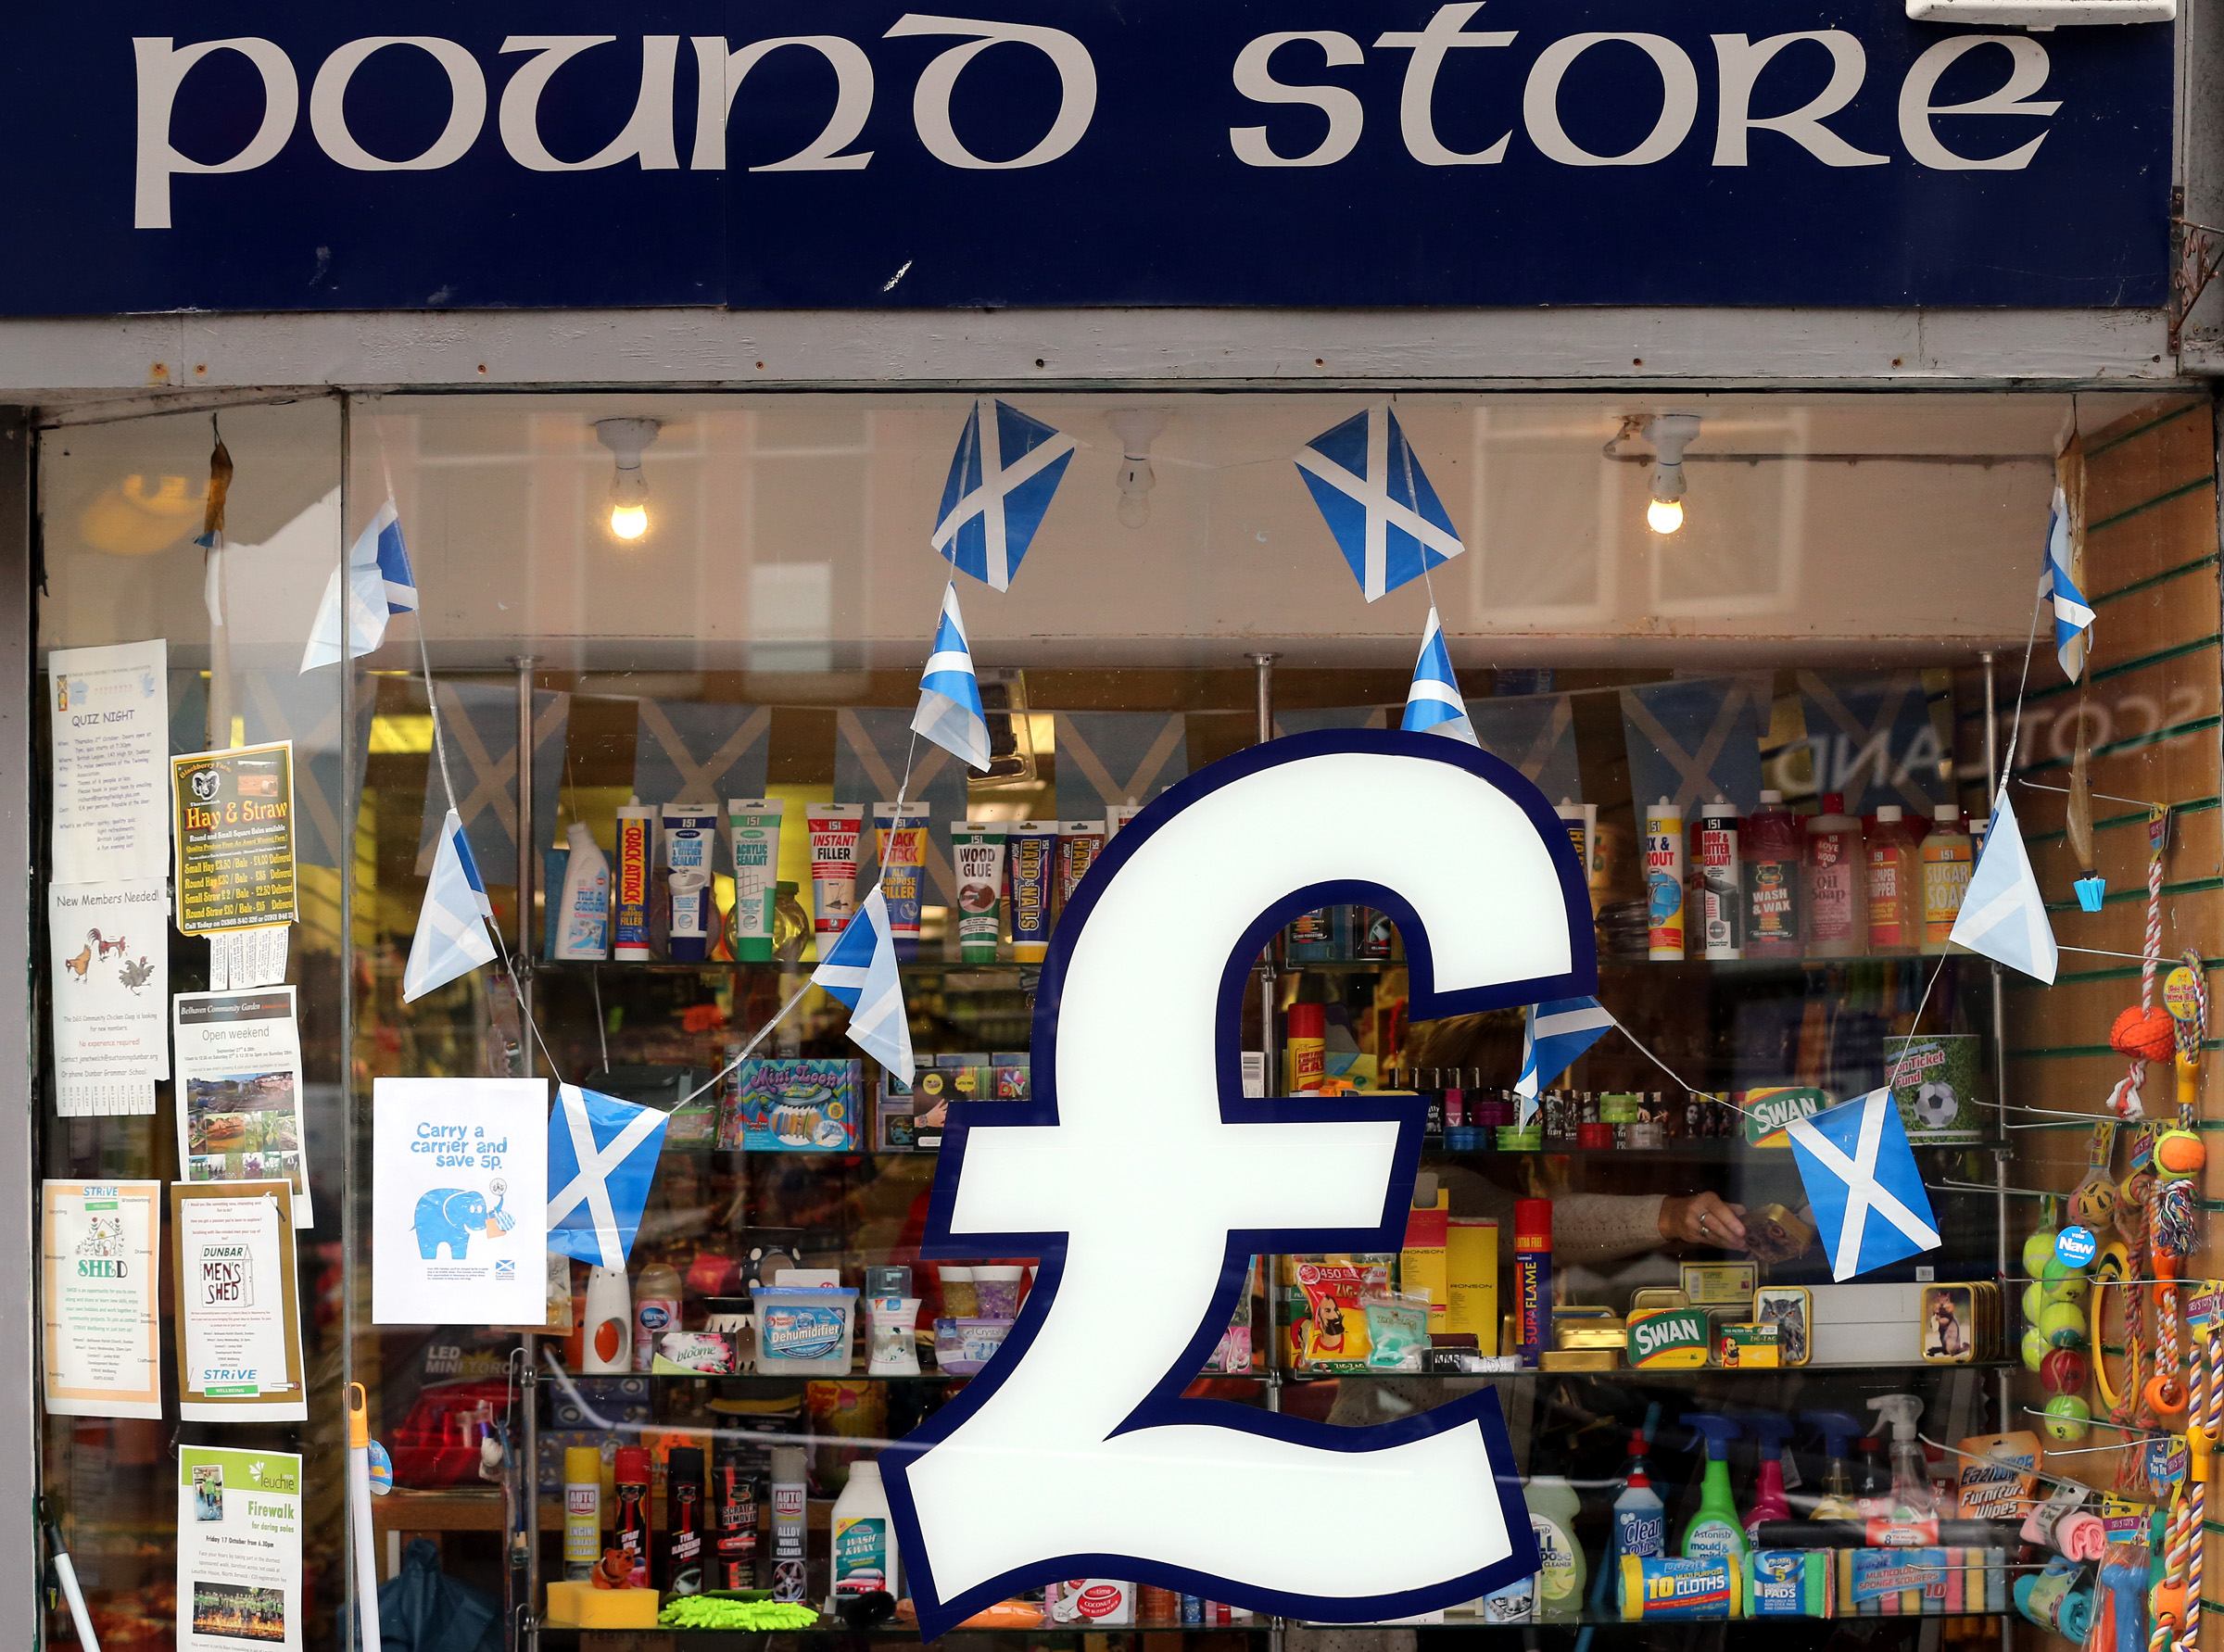 Polls even as Scottish Independence vote nears